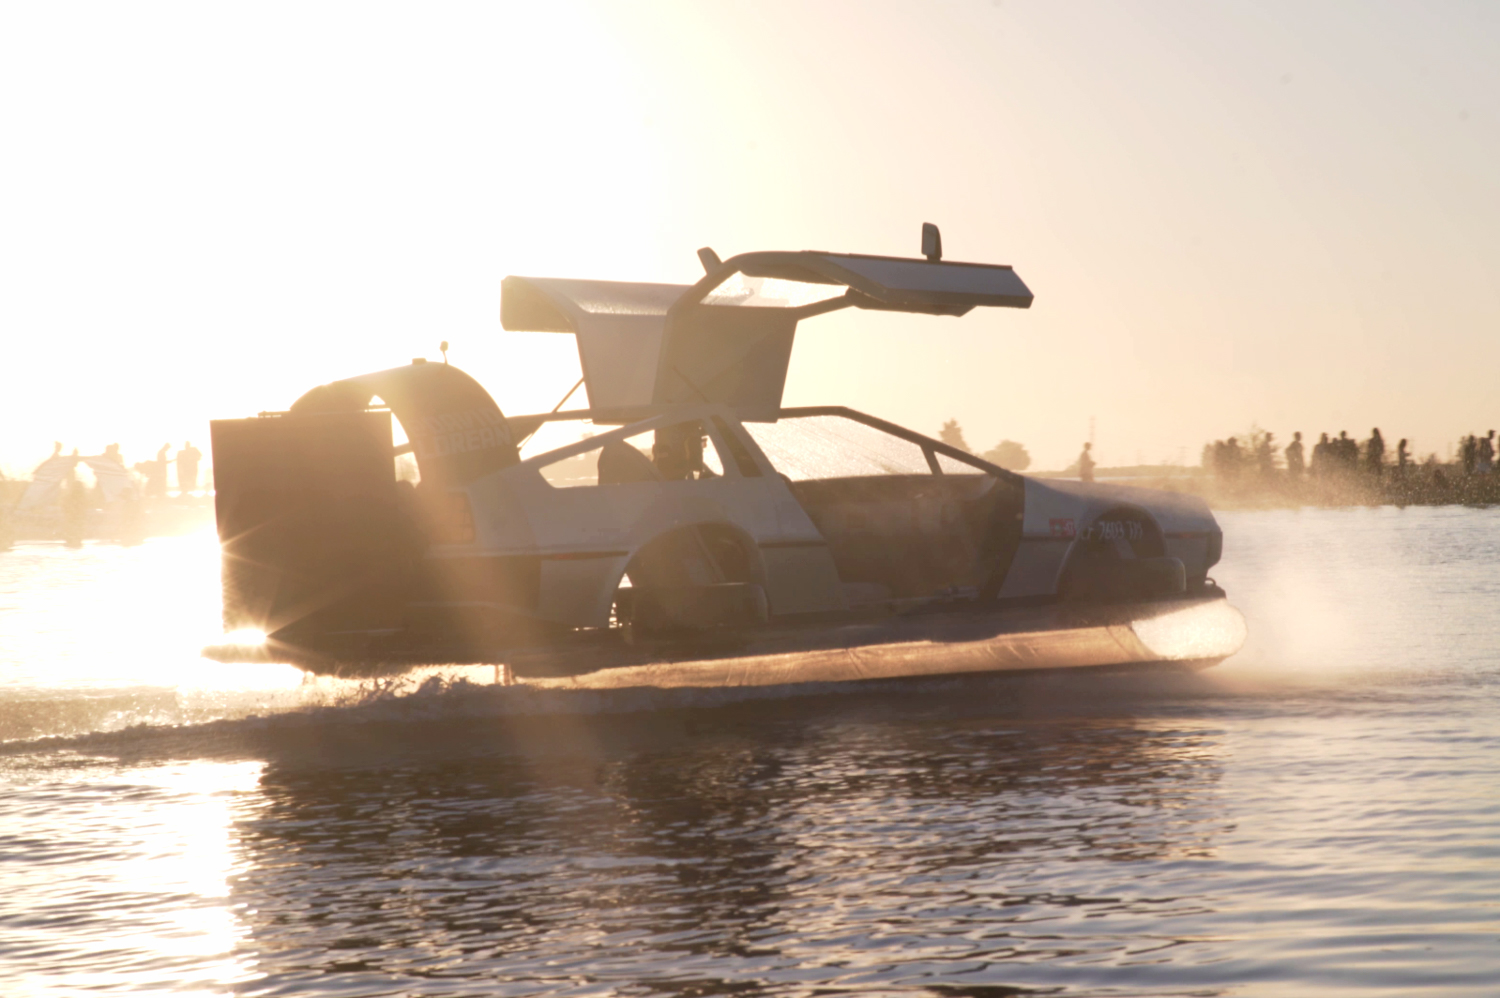 delorean hovercraft doors up side sunset